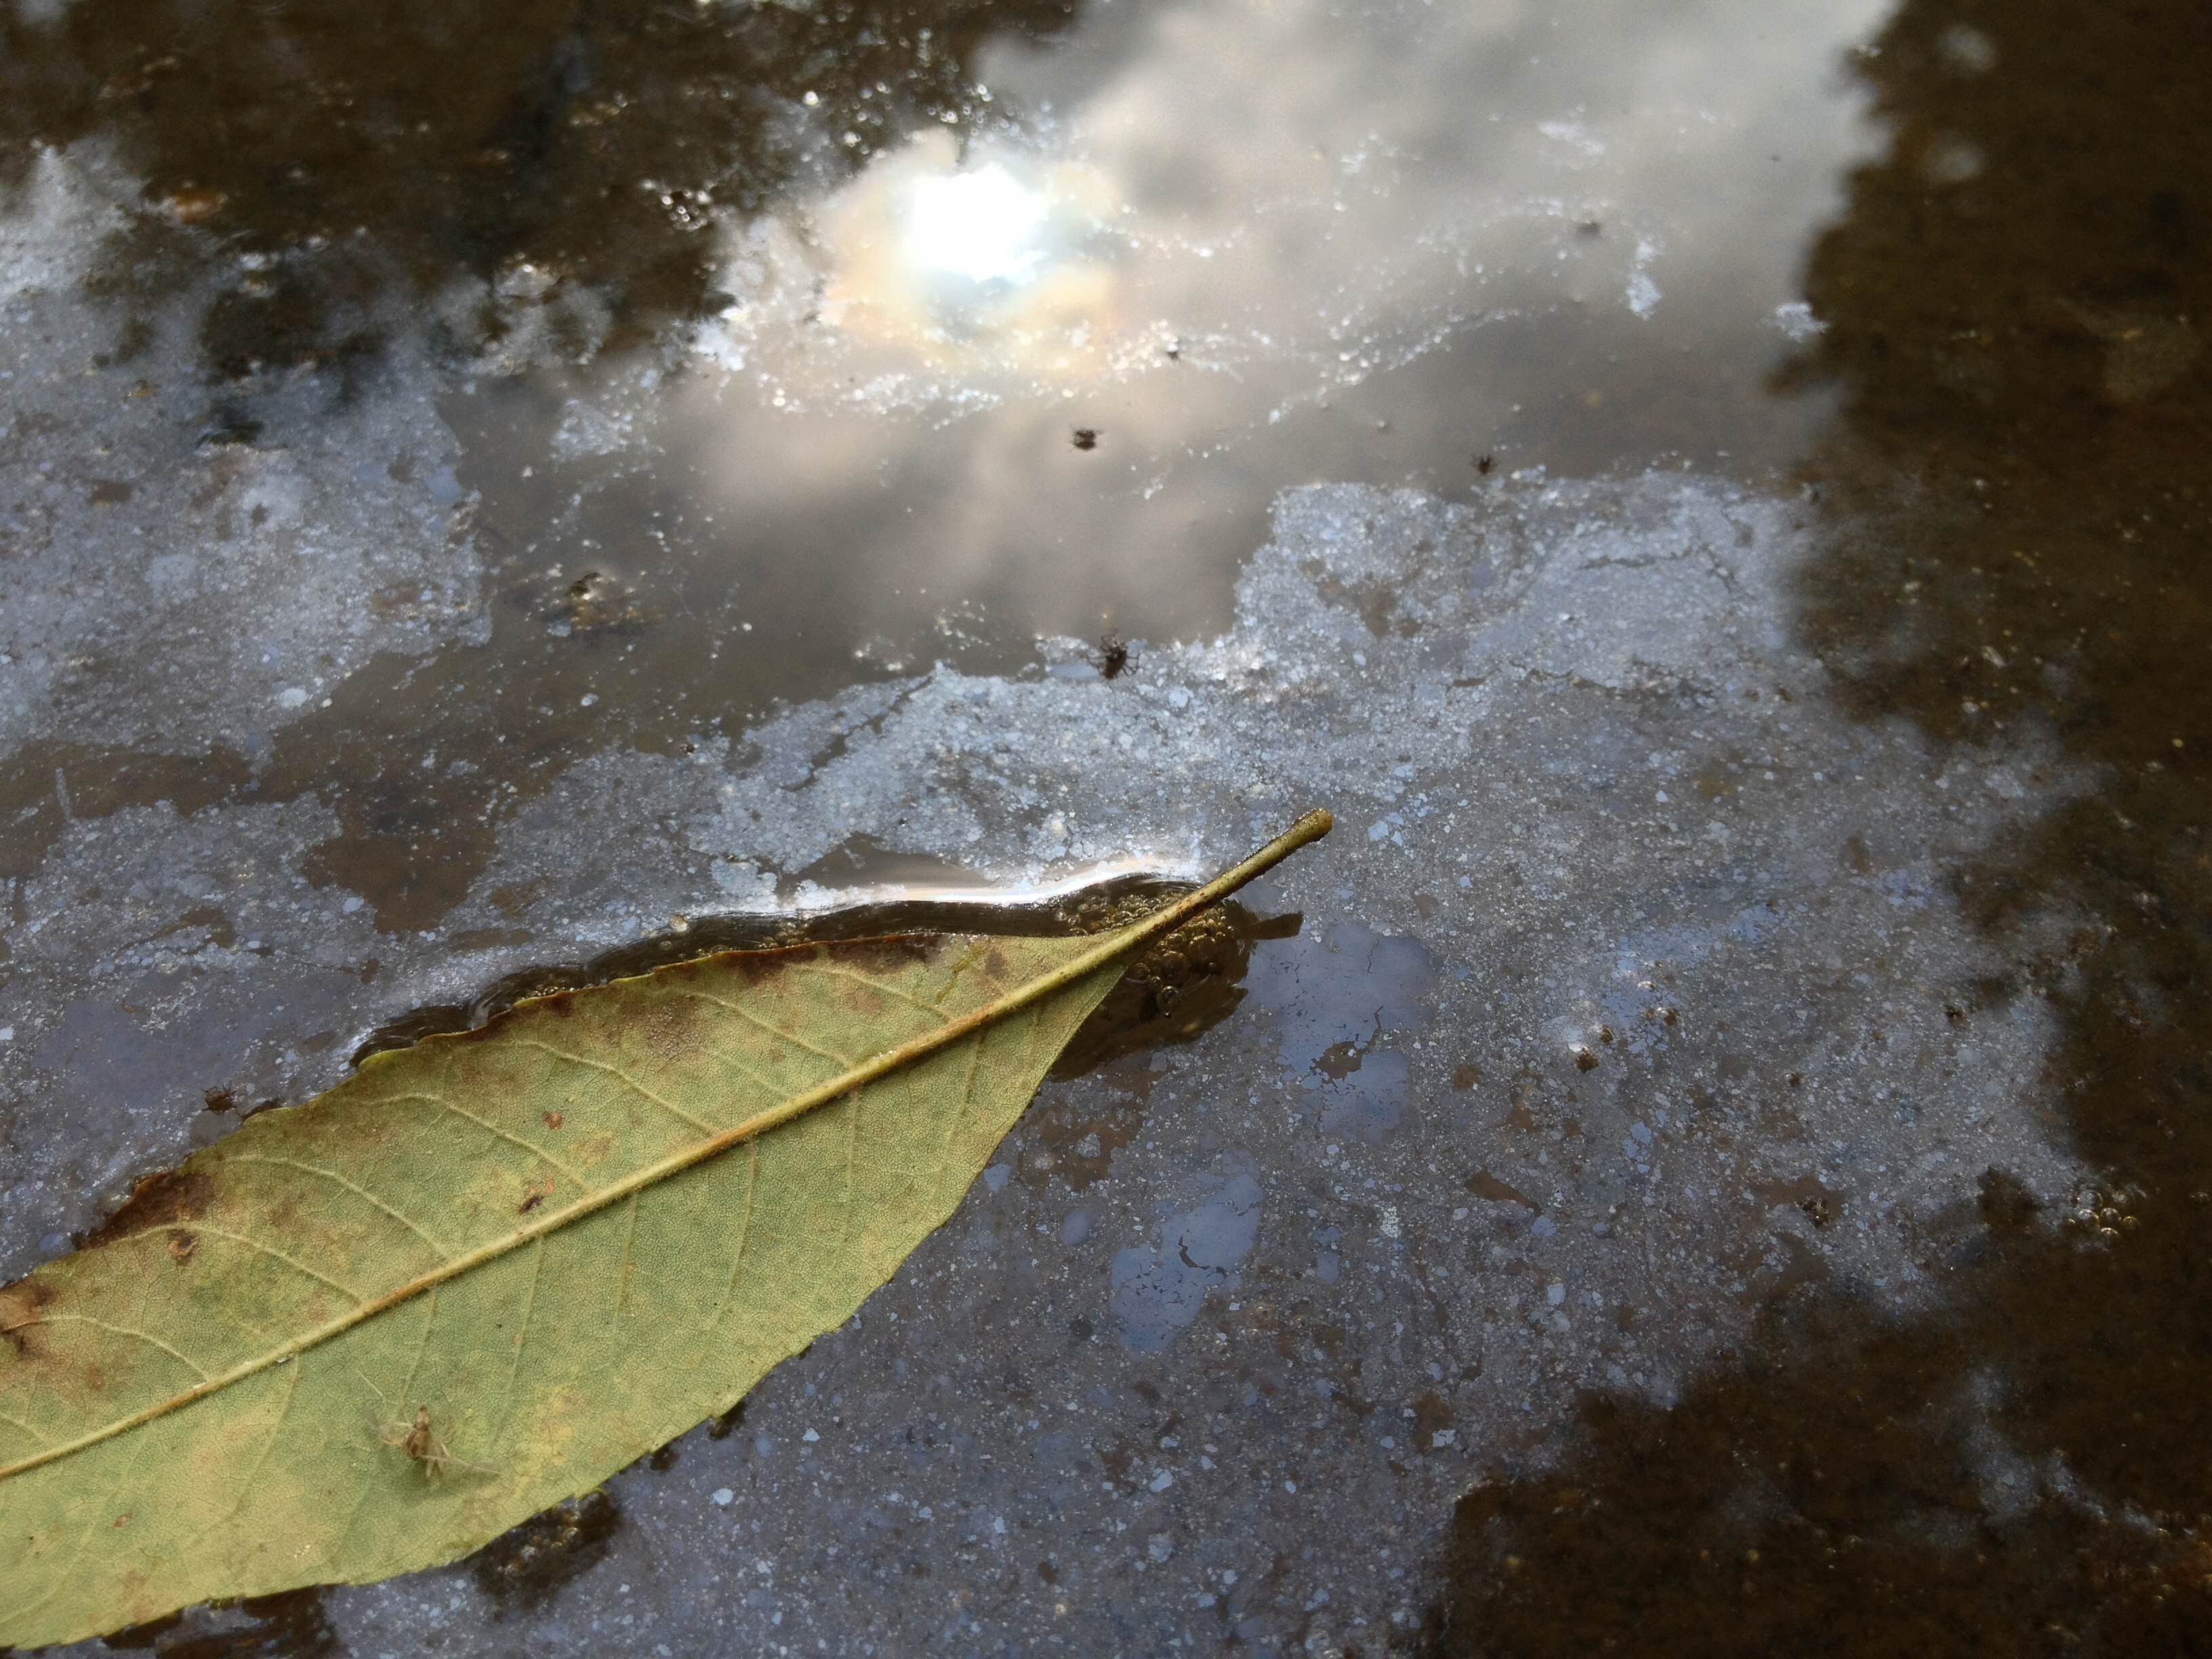 Leaf on the Water by Maddy Becker